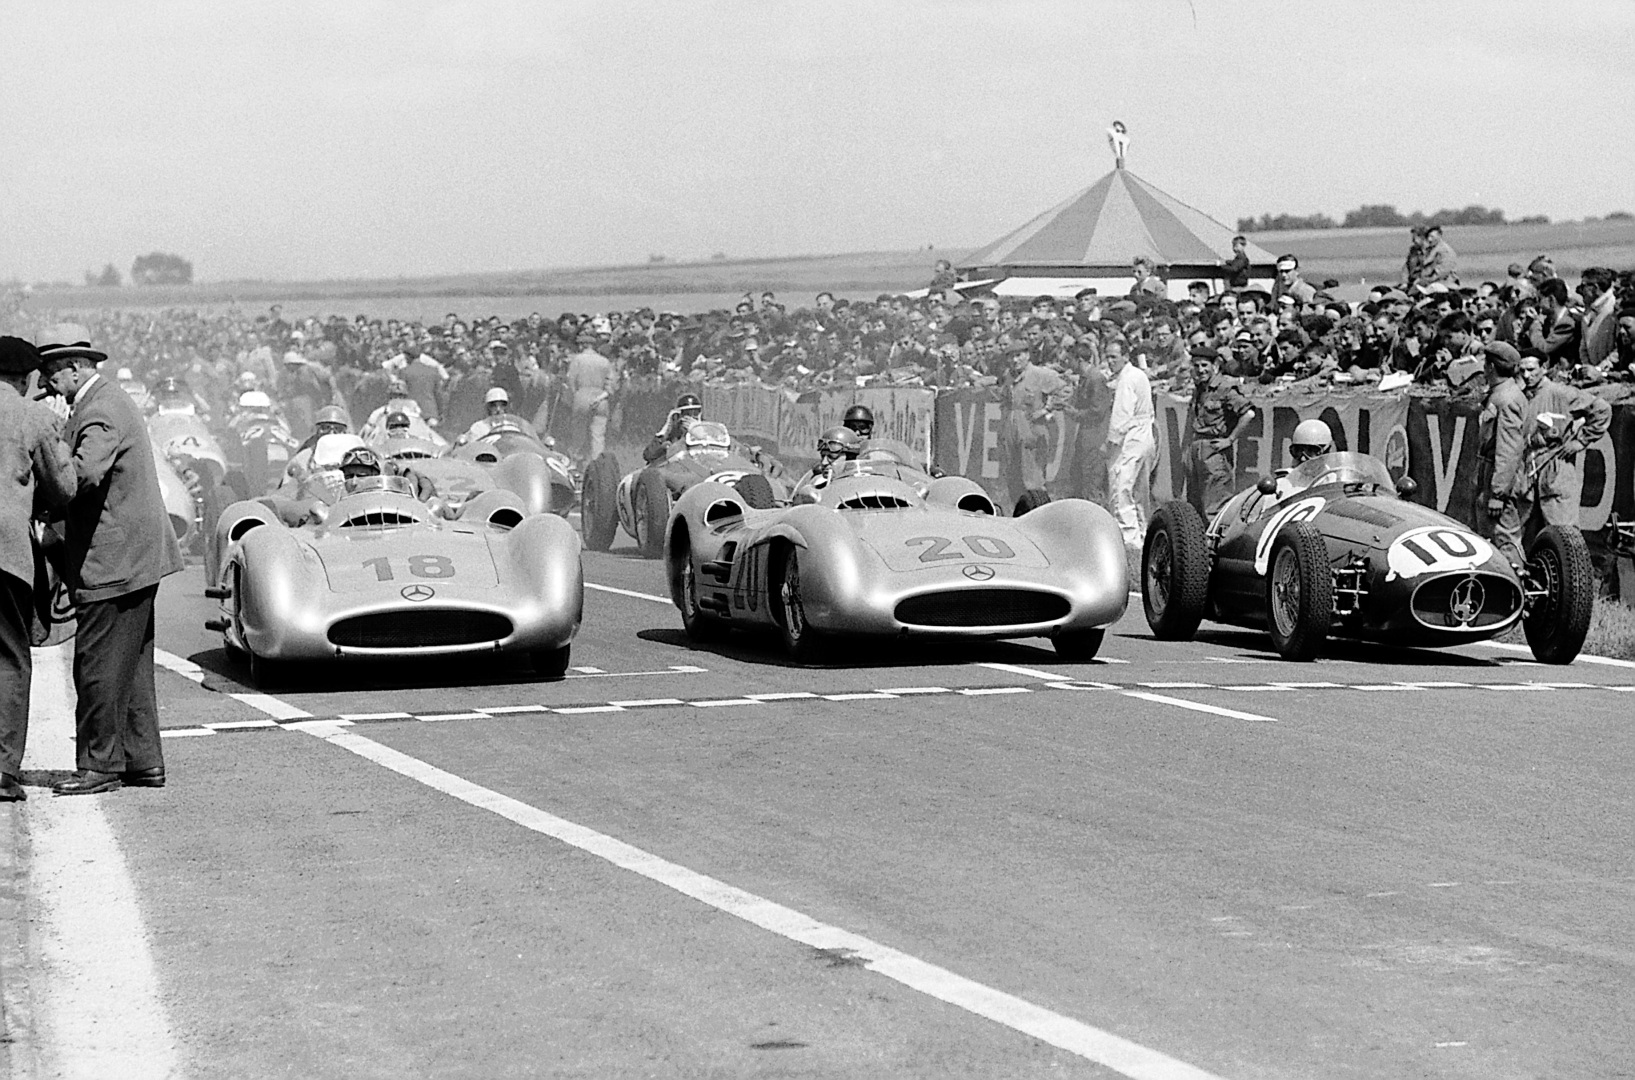 Double victory in the French Grand Prix in Reims, July 4, 1954. Lining up in the first row before the start: Juan Manuel Fangio (start number 18), the winner of the race, Karl Kling (start number 20) who finished in second place, both driving Mercedes-Benz W 196 R Formula One racing cars, and Alberto Ascari (start number 10) at the wheel of a Maserati 250 F.